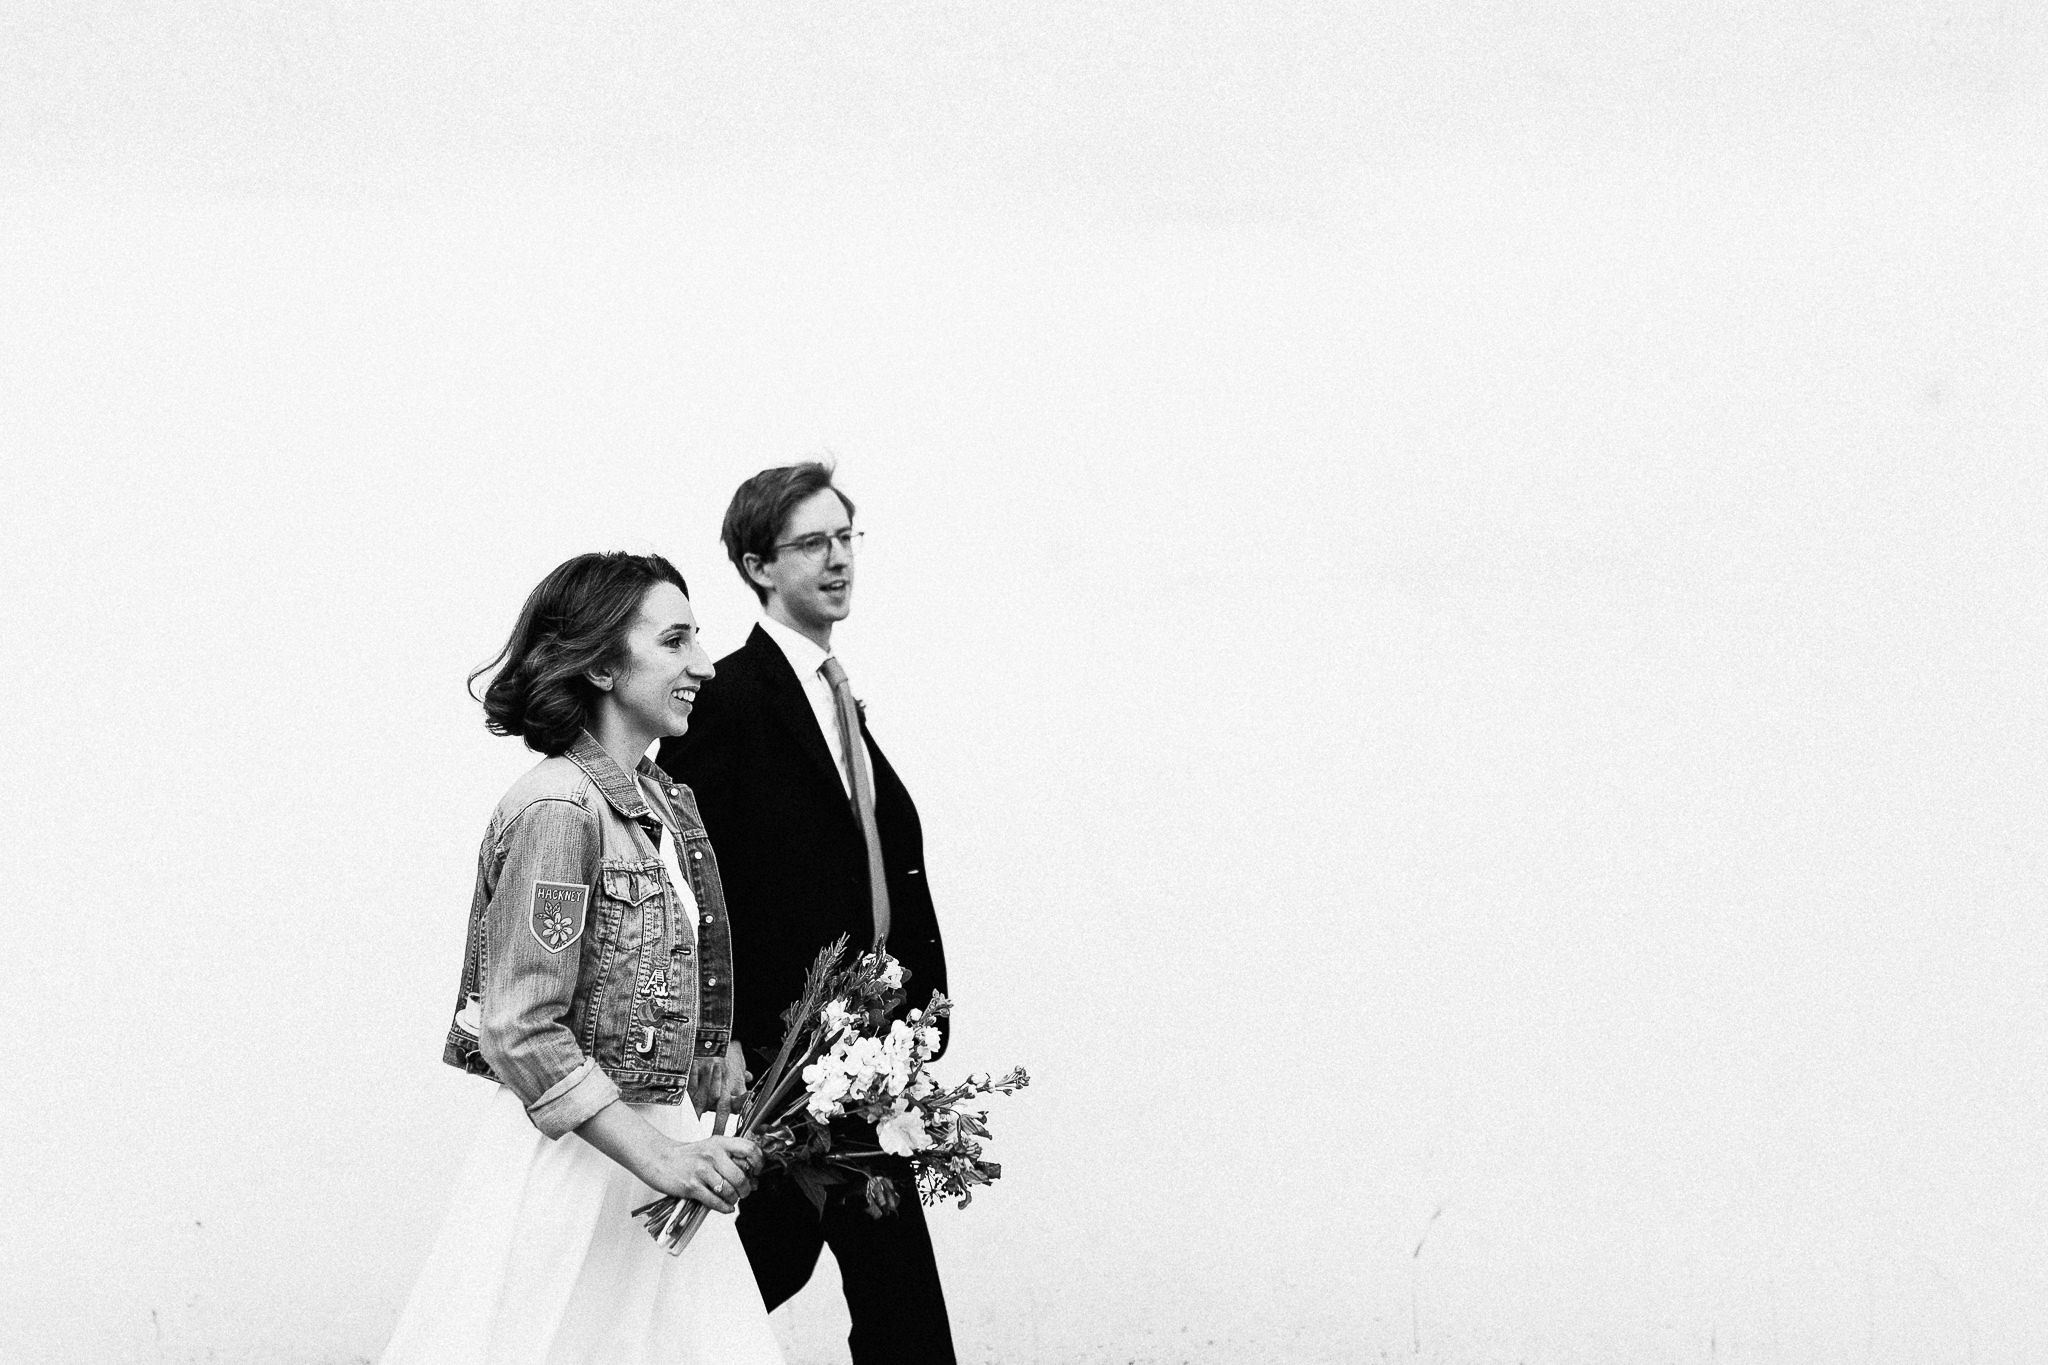 fun candid hackney wedding photos minimalistic